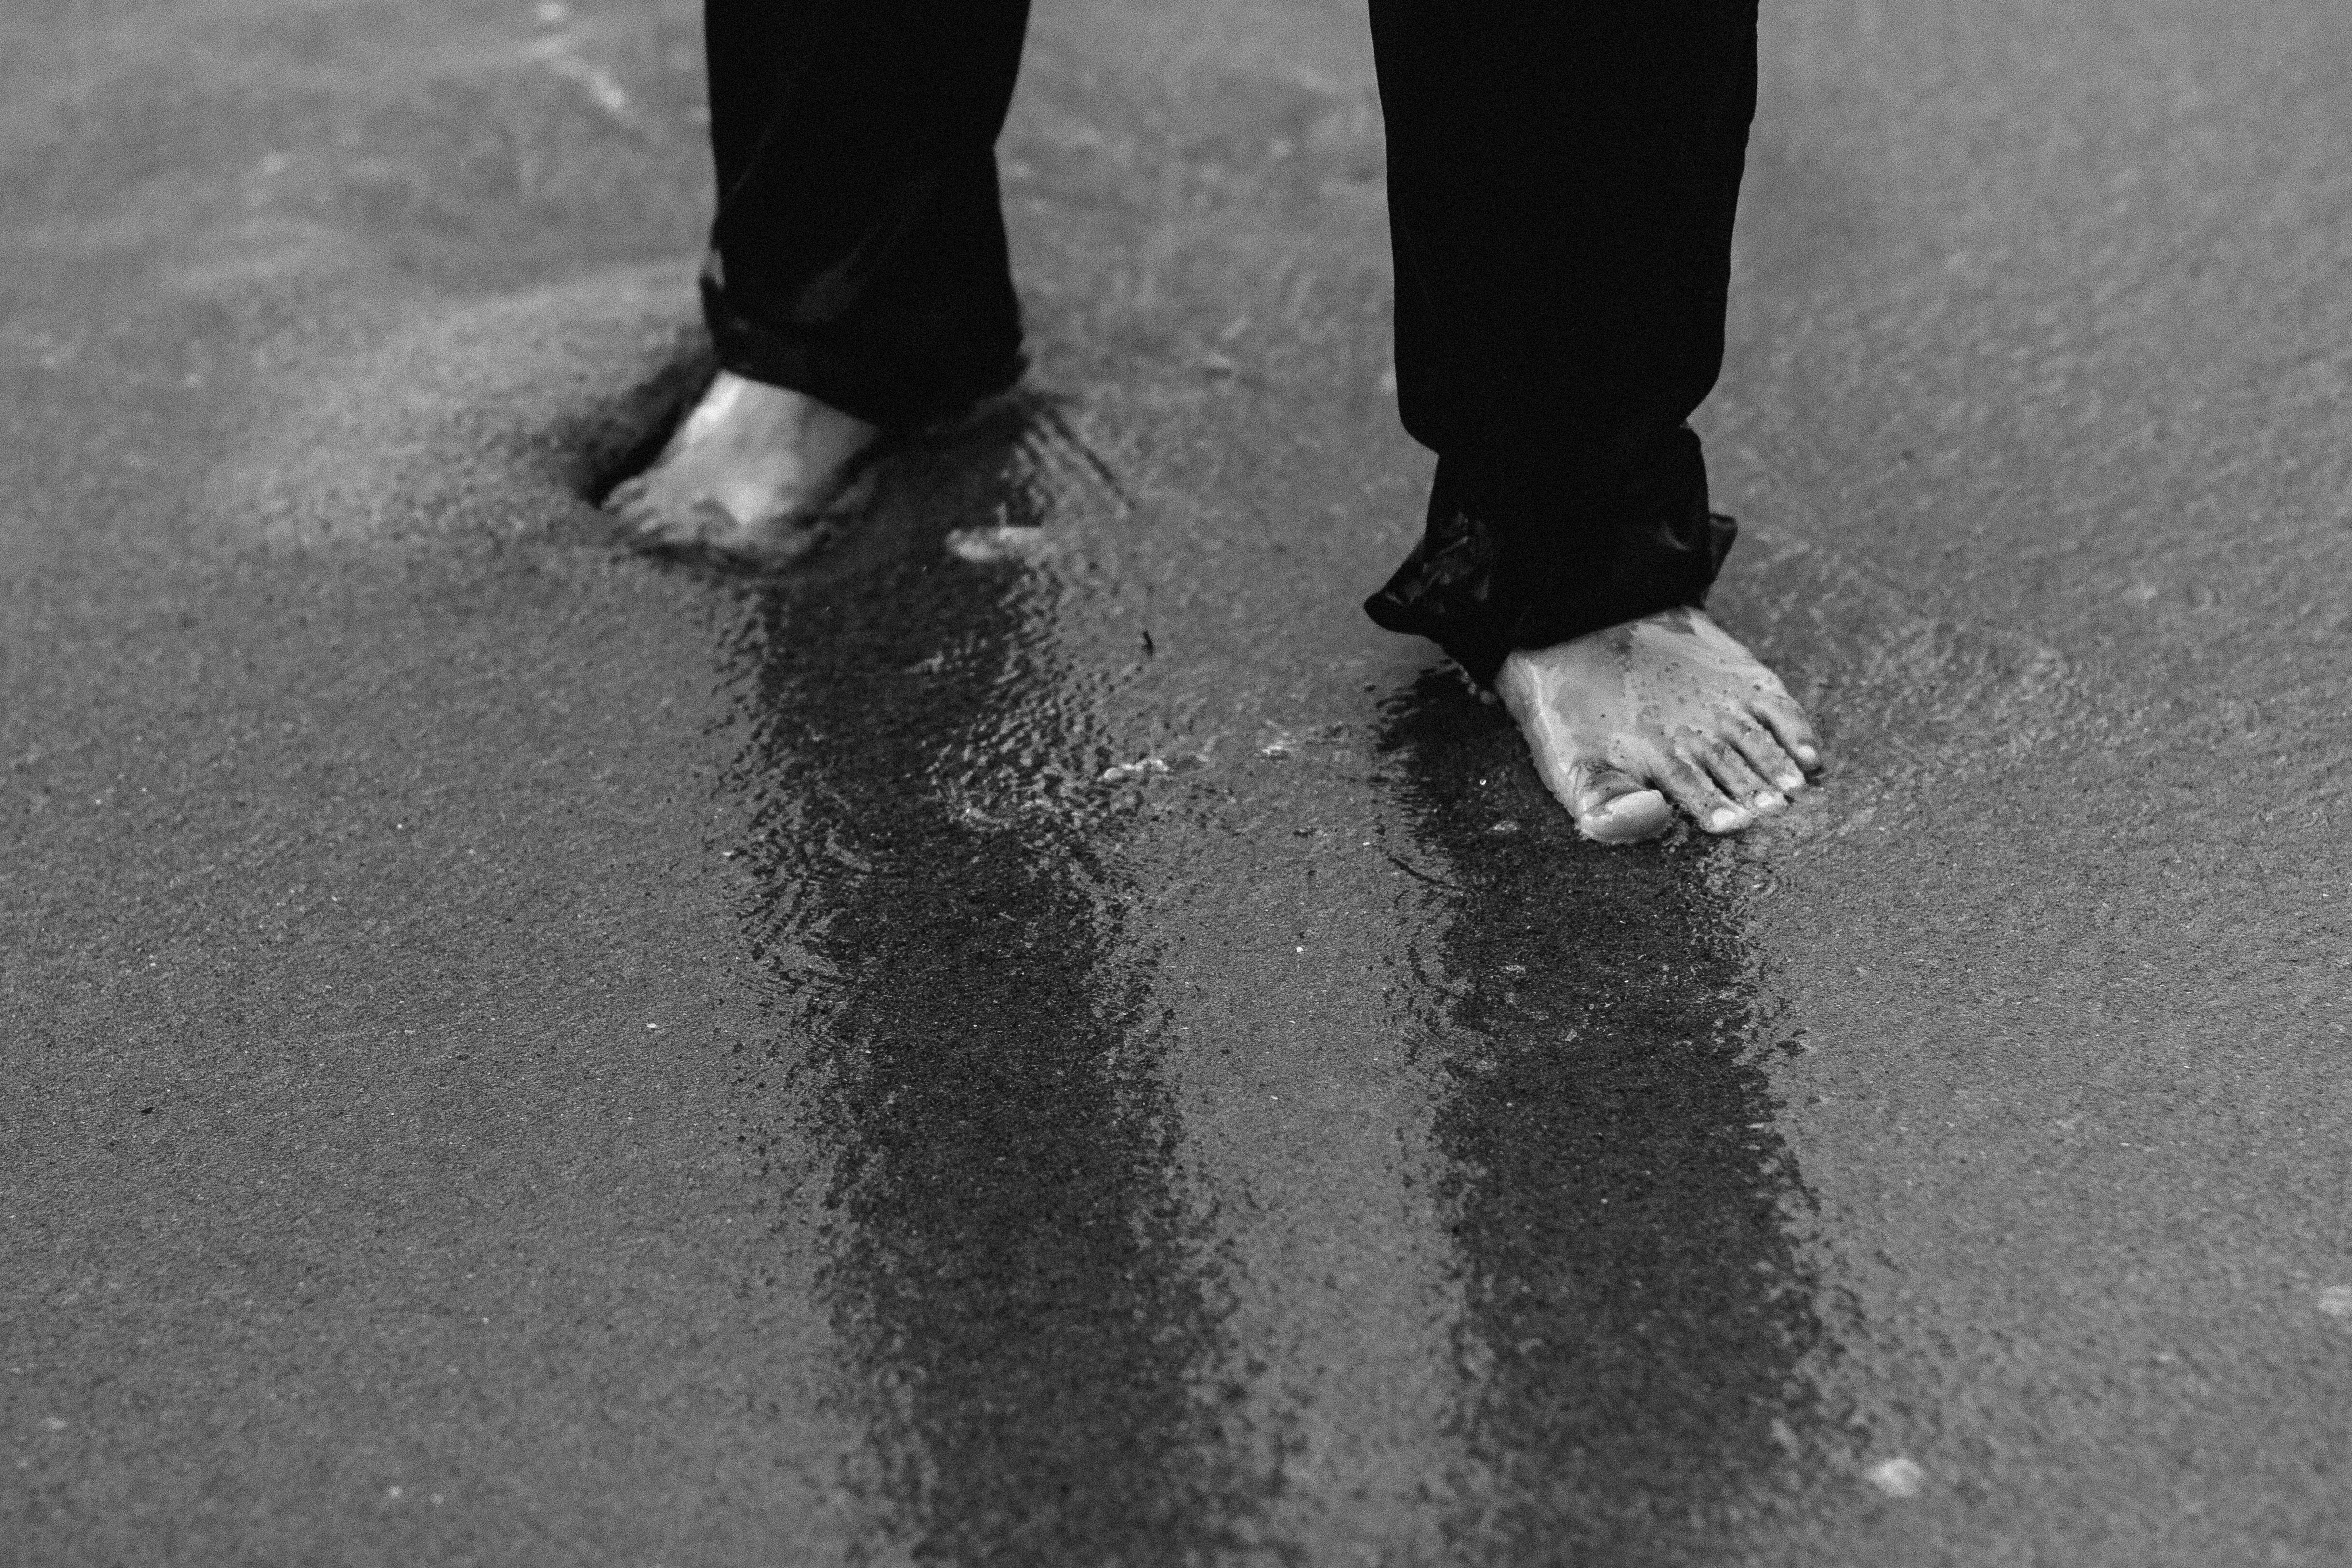 barefooted person wearing pants standing on wet sand